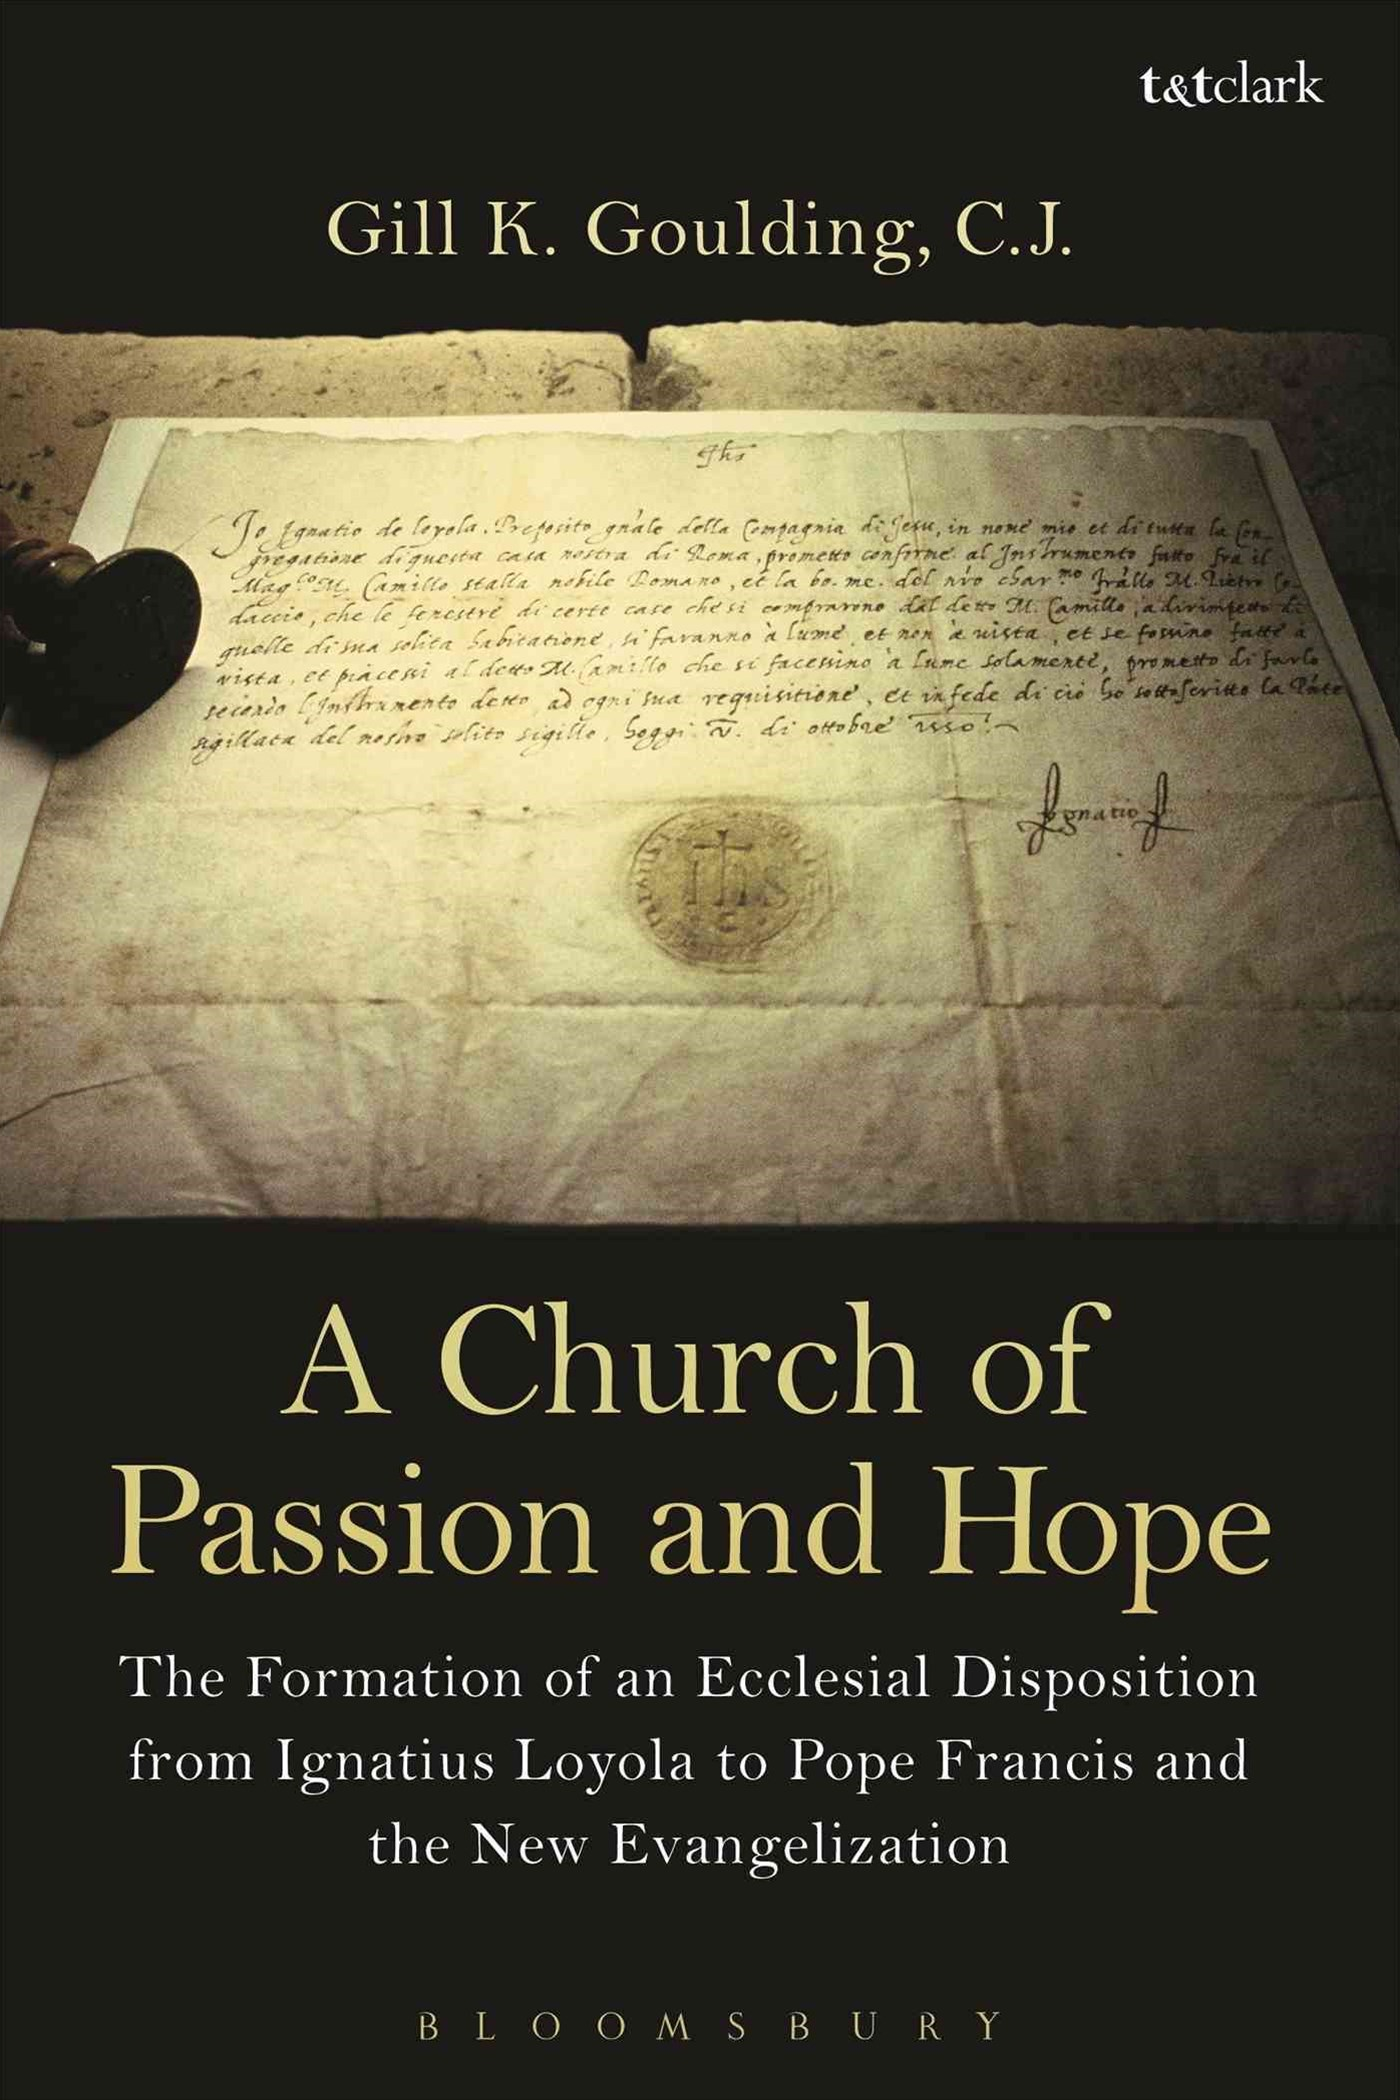 A Church of Passion and Hope